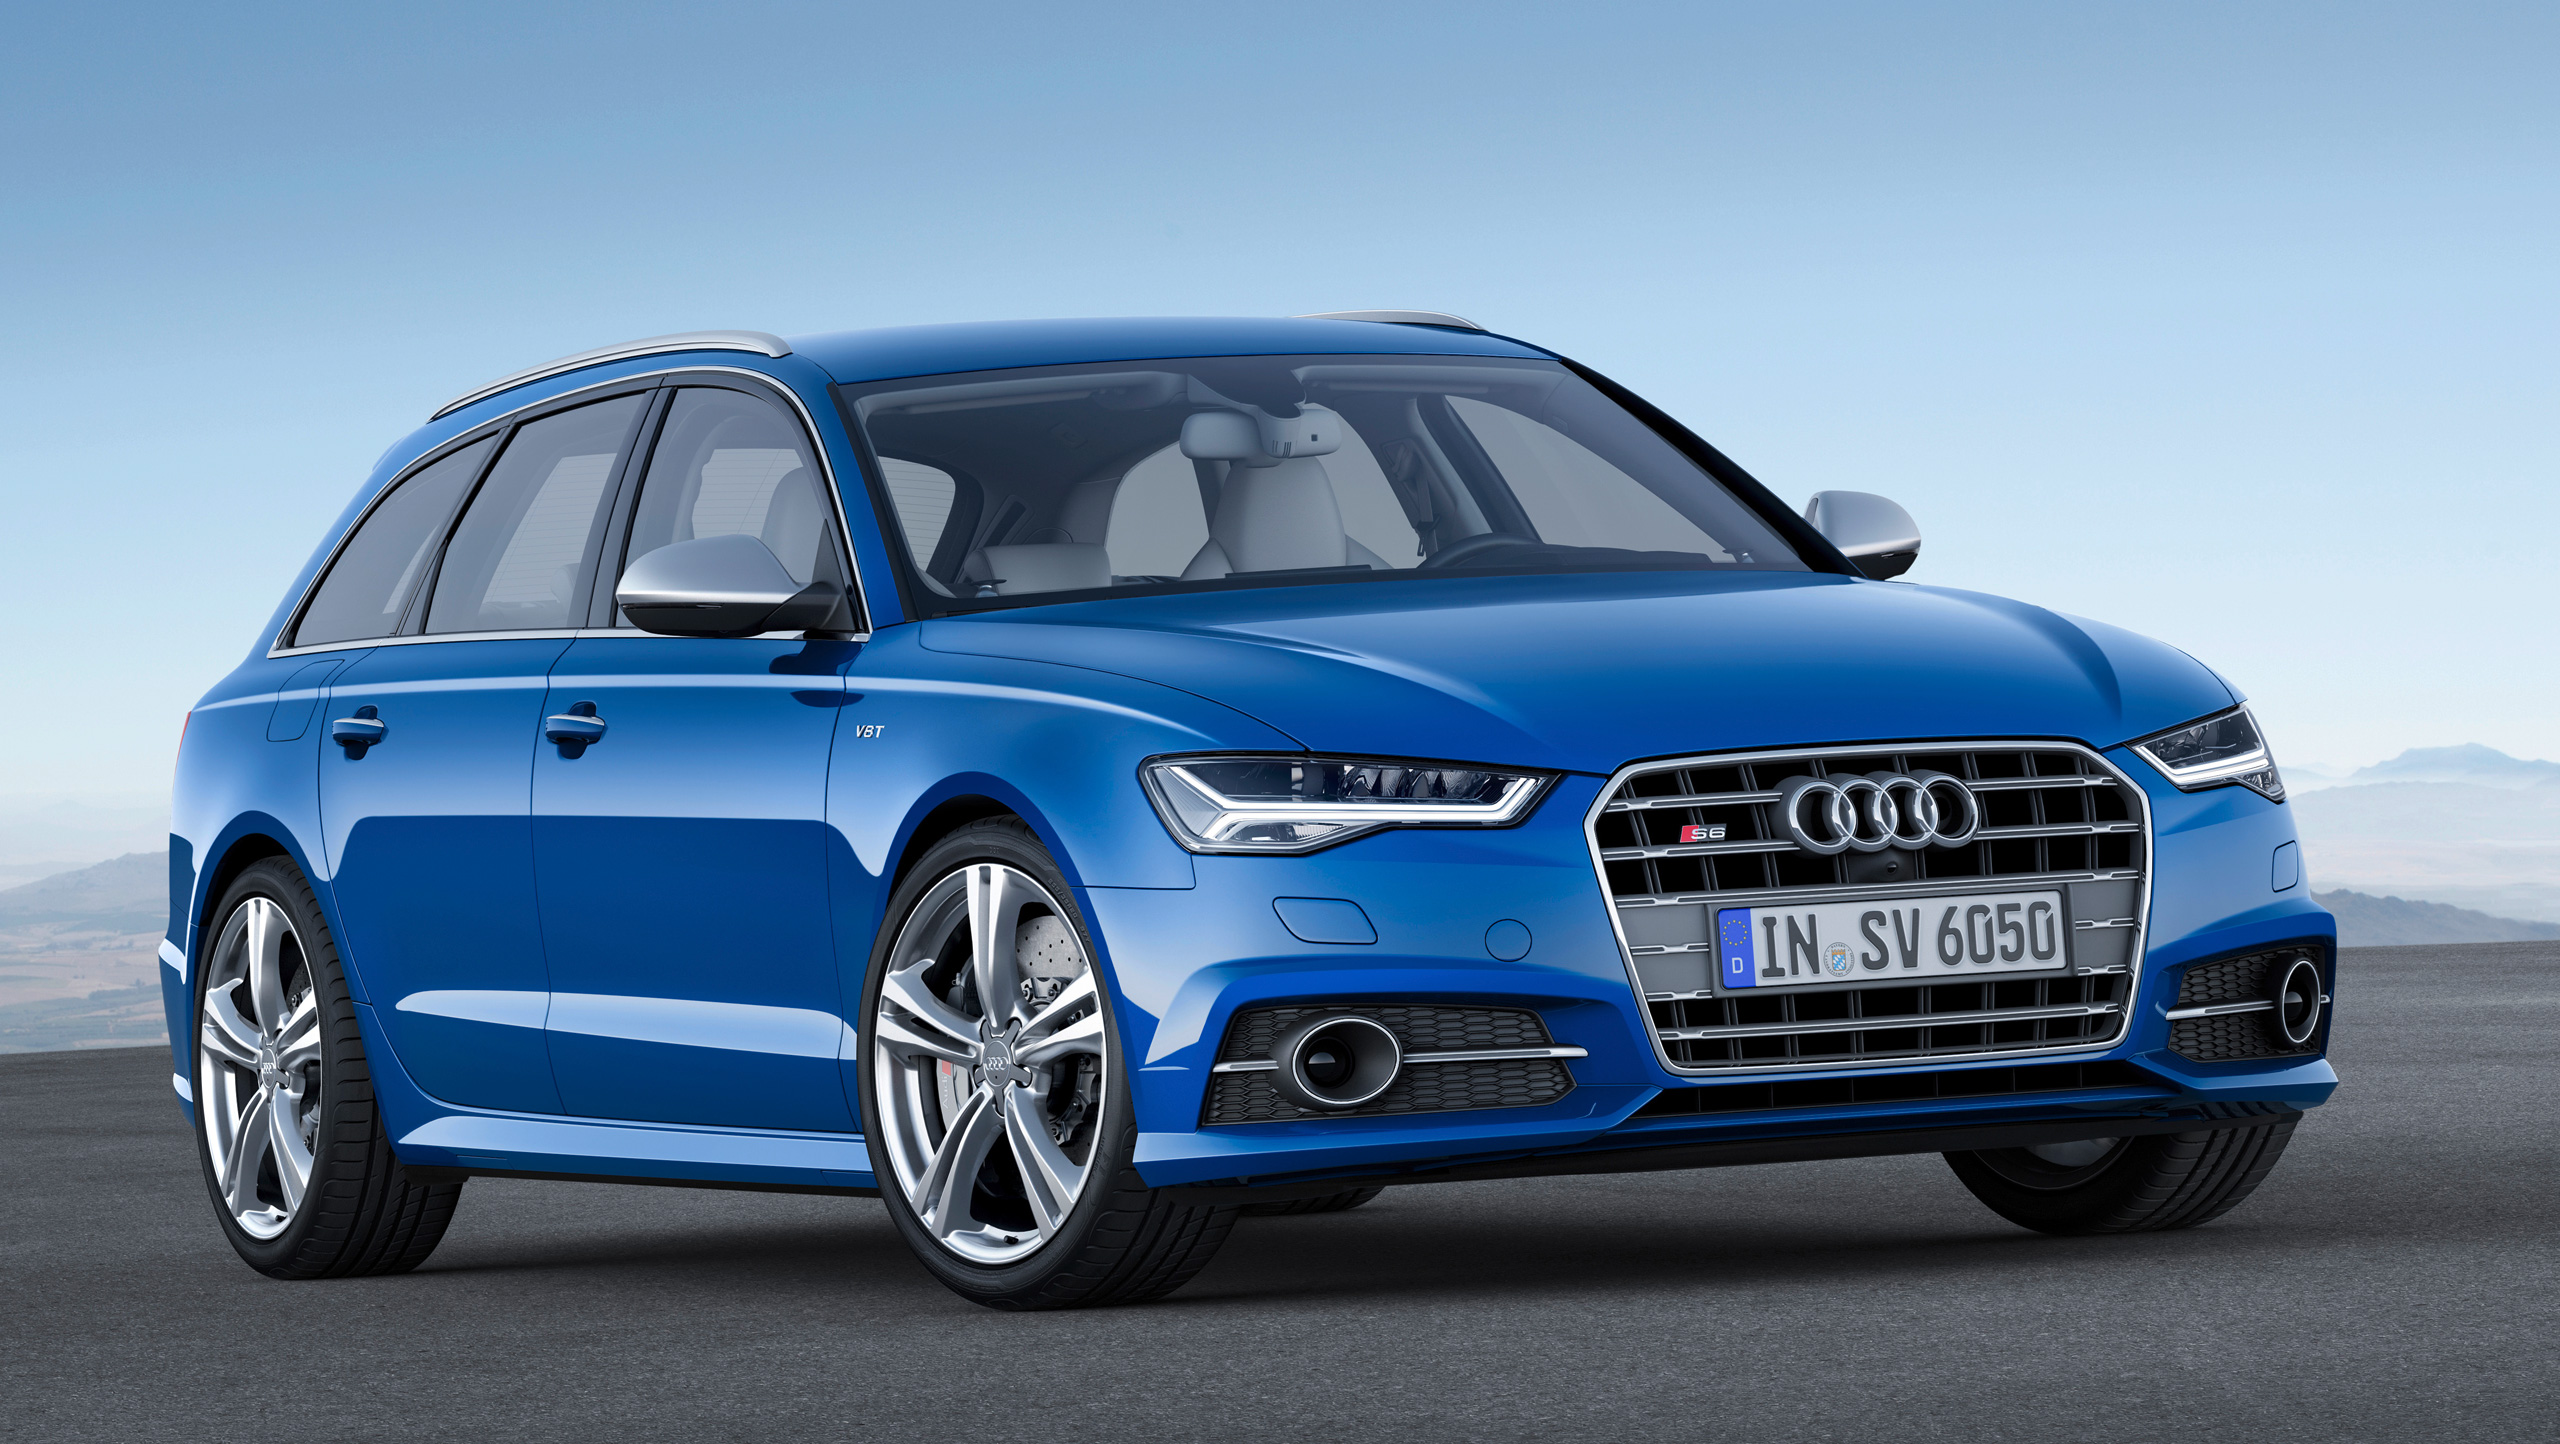 Audi S6 And Rs6 Avant Updated V8 With 450 560 Hp Paul